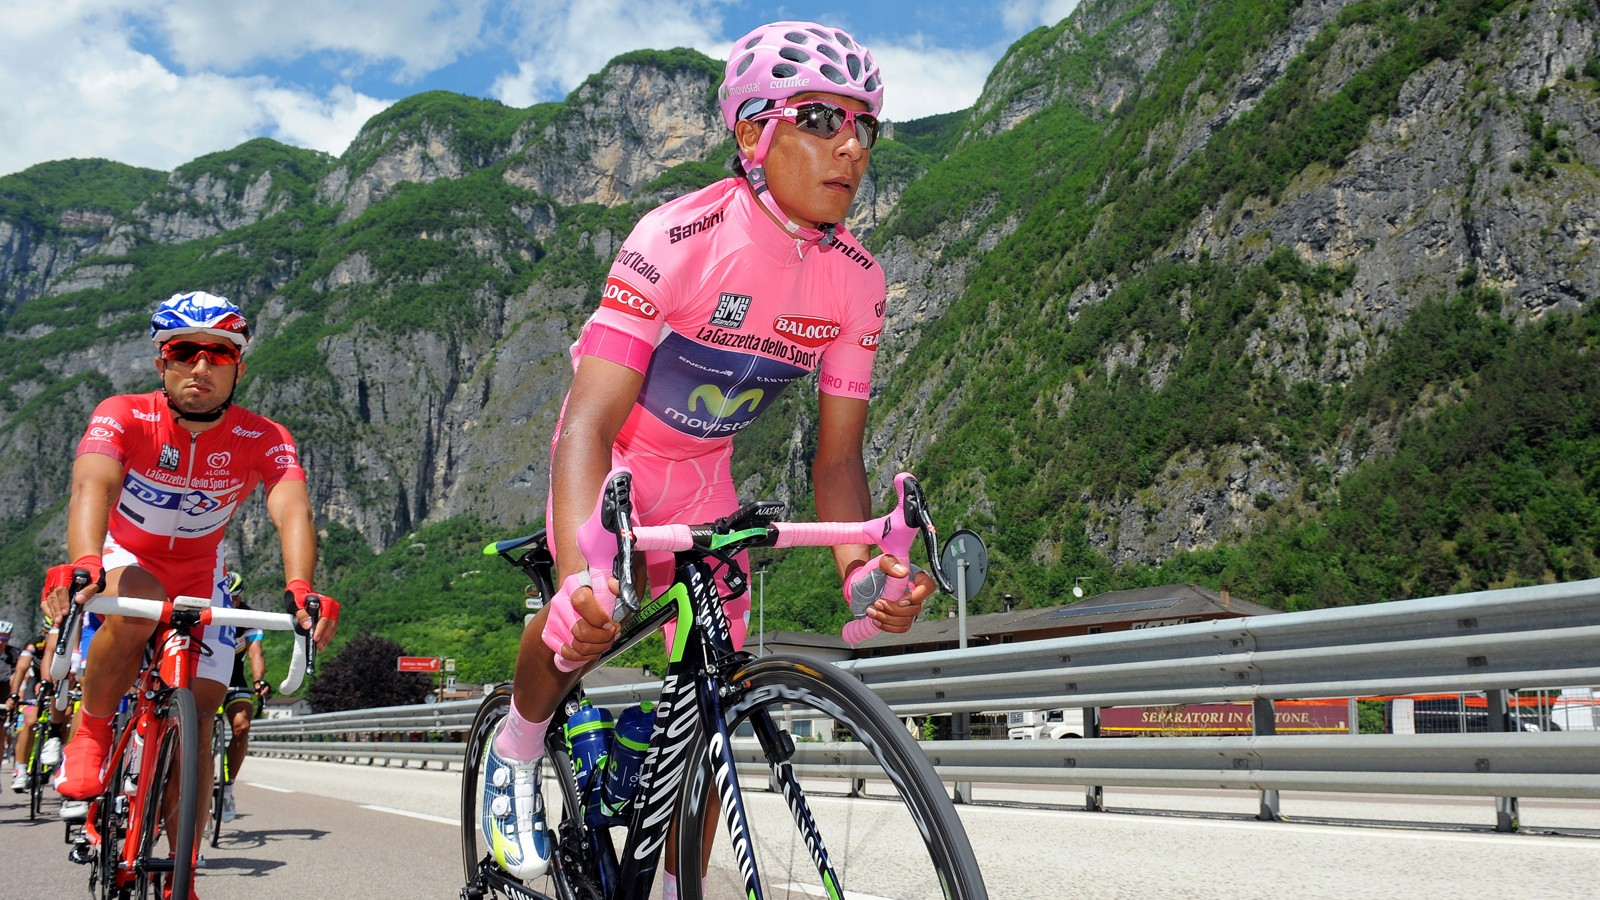 The Colombian Nairo Quintana moved into the leader's jersey with a mountain top win